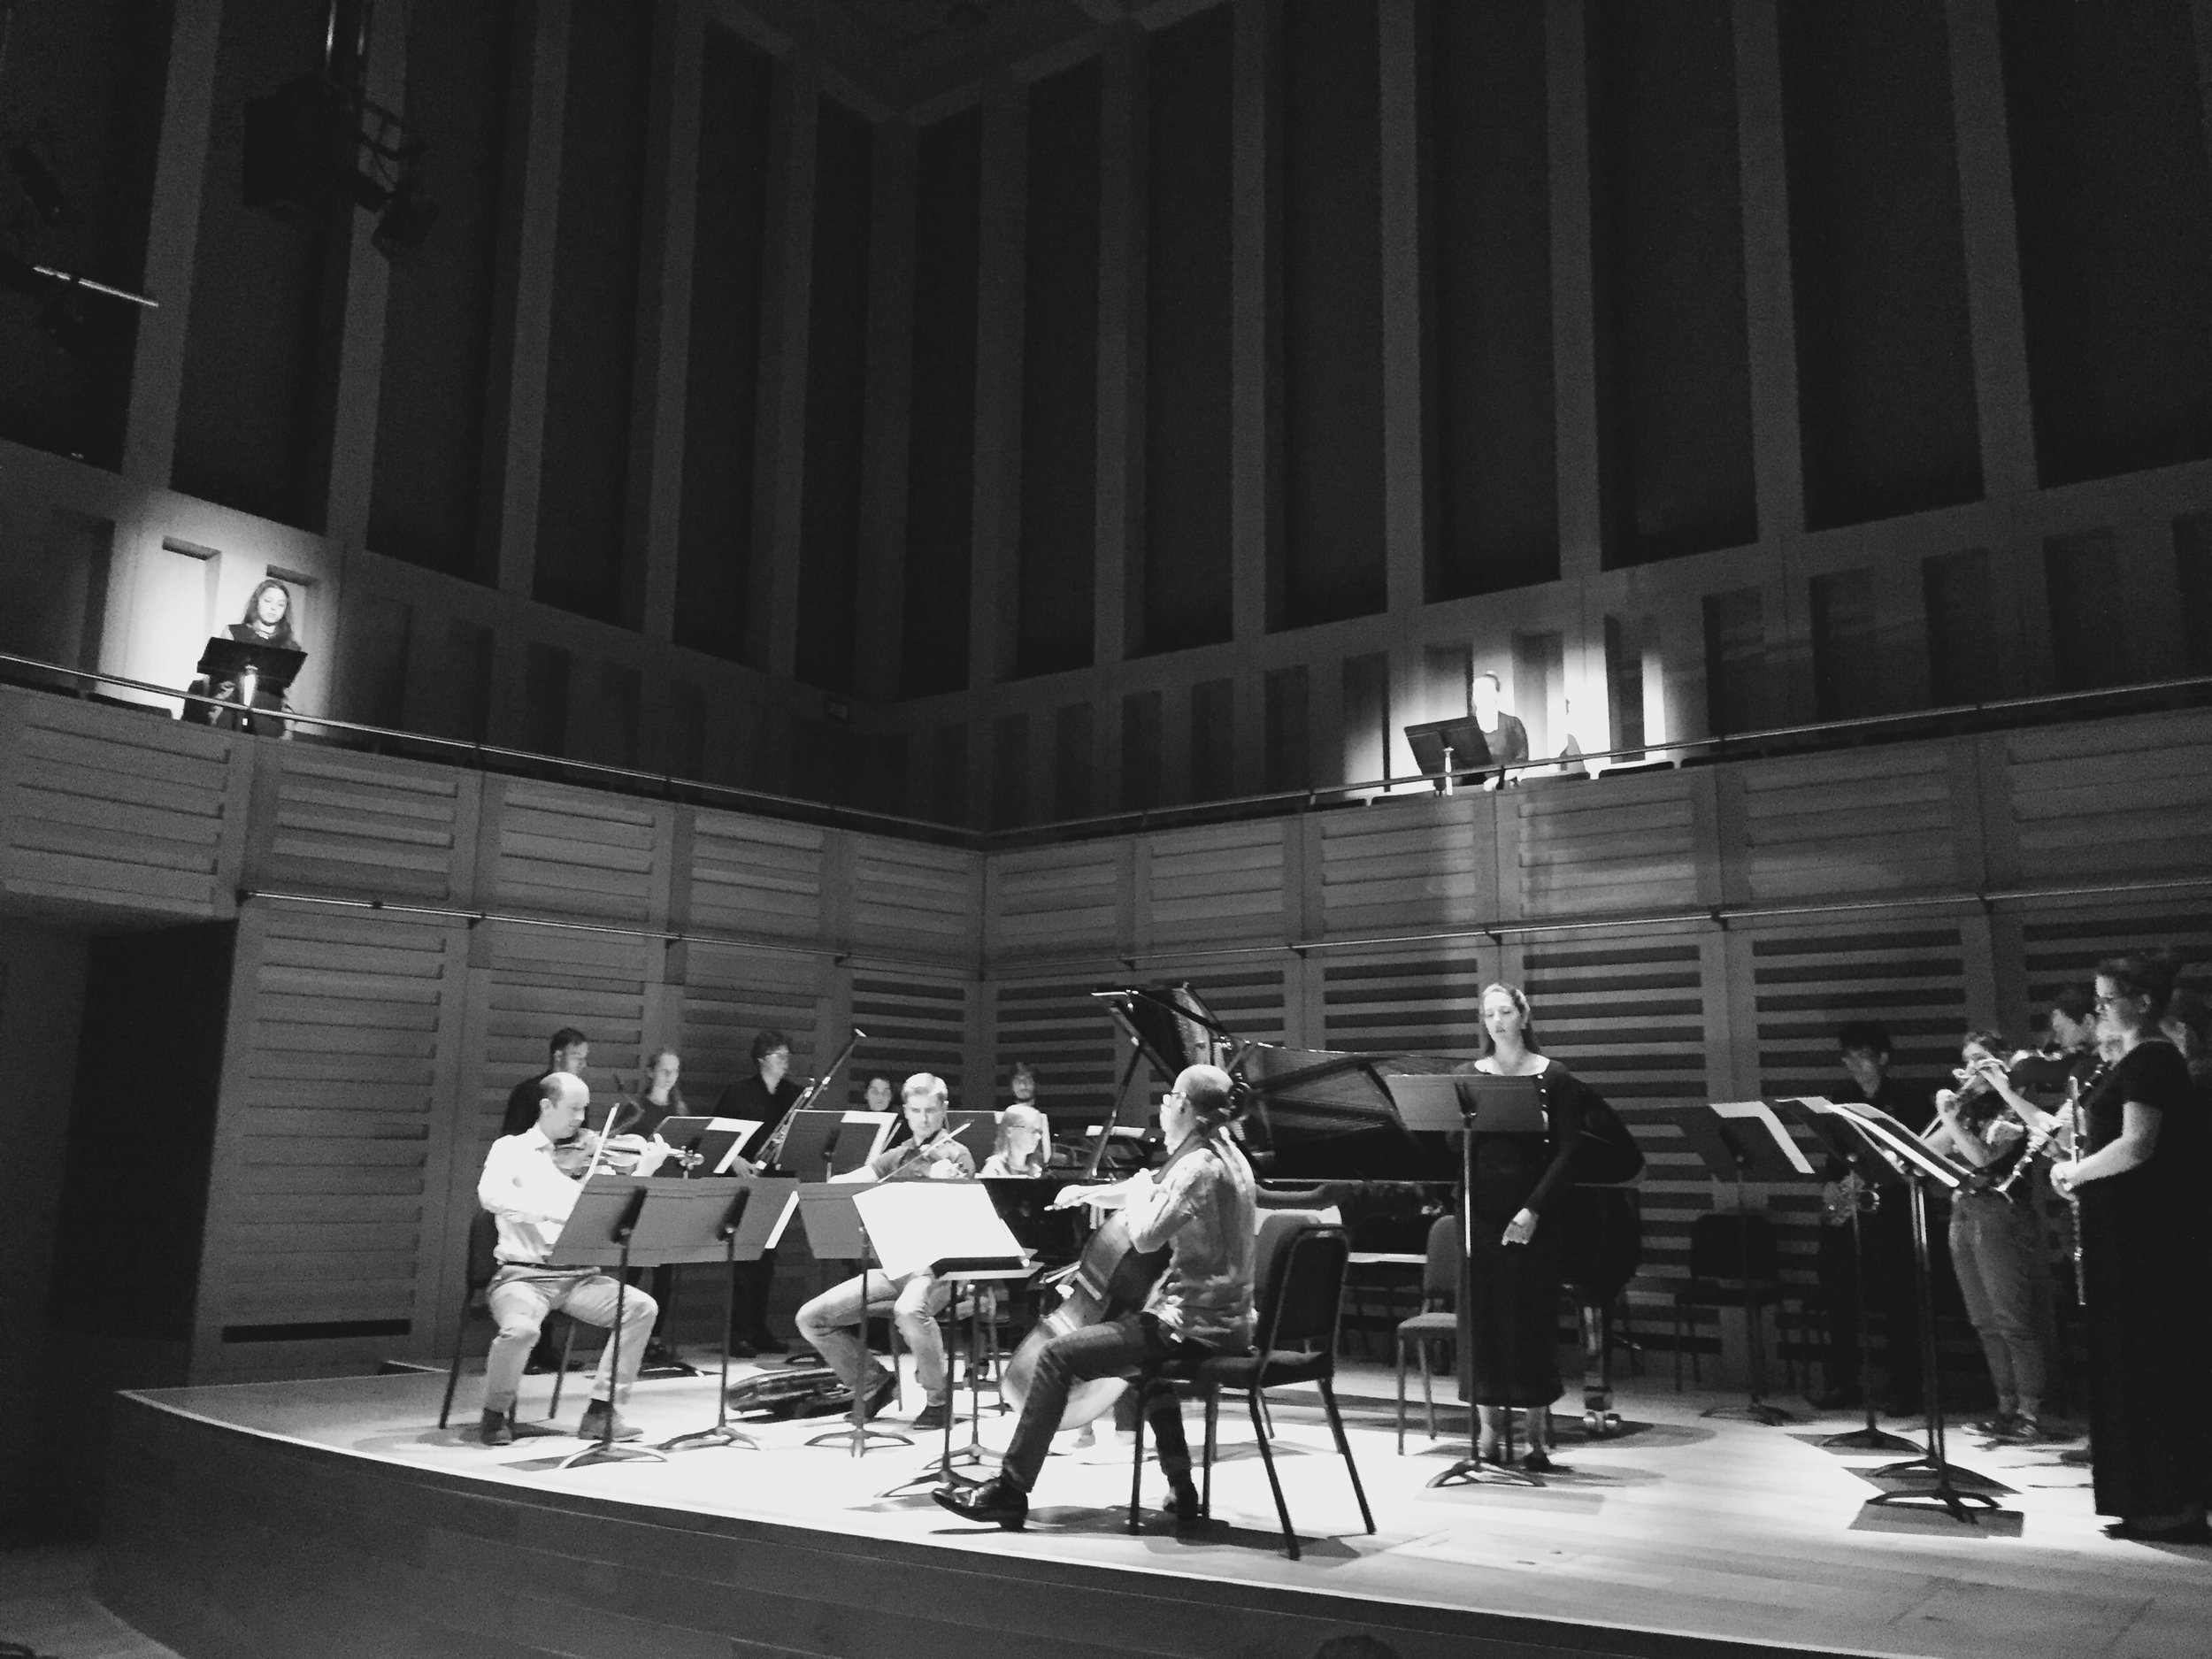 Mary Dullea ,  Tippett Quartet  and musicians of Royal Holloway University of London rehearsing two national anthems: it's not working at Kings Place, London (UK); 7 June 2017